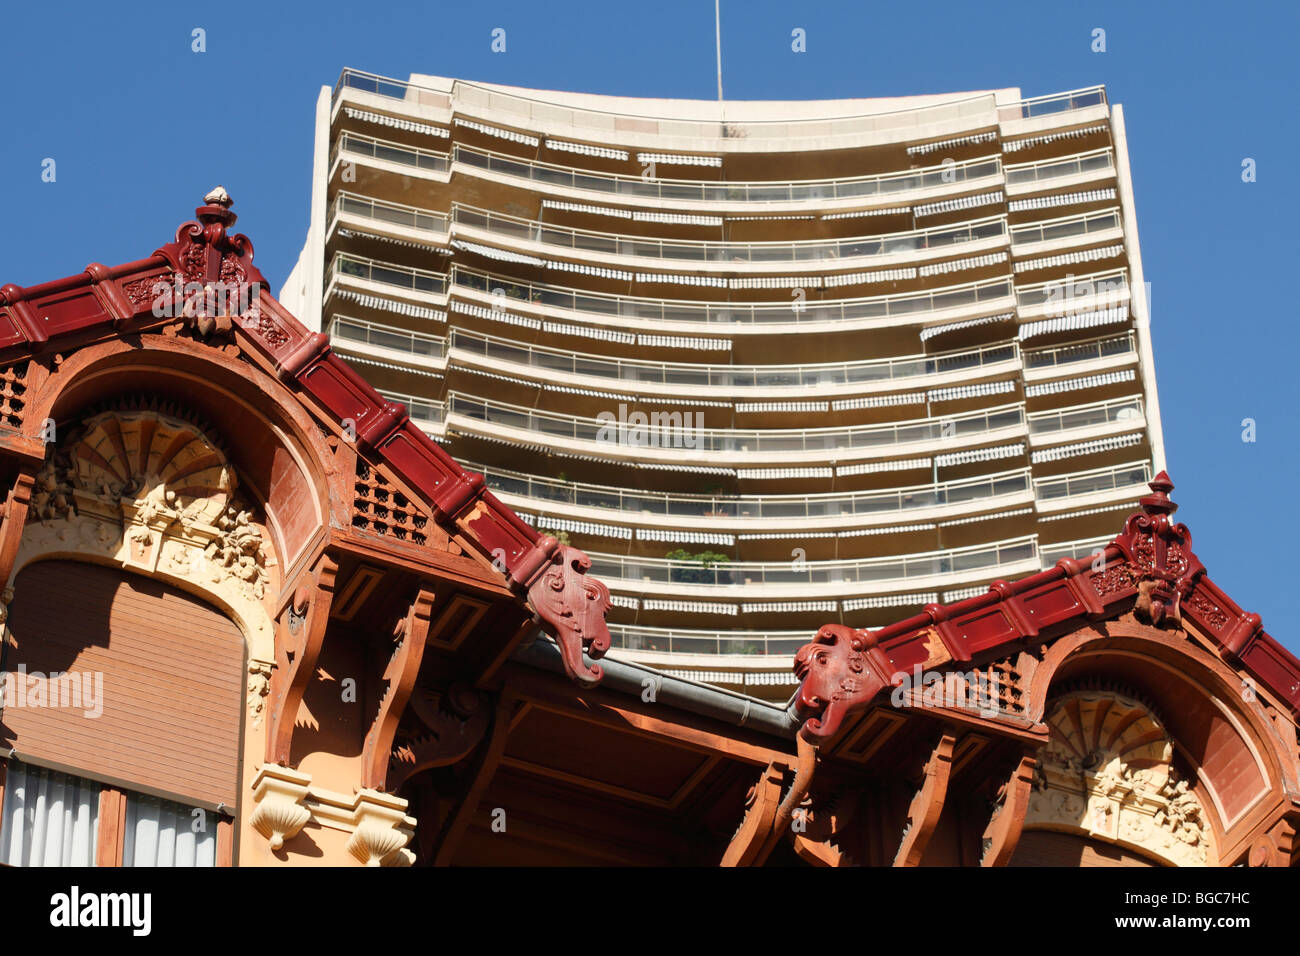 Gable of an old house in front of a skyscraper, Boulevard d'Italie, Monaco, Cote d'Azur, Europe - Stock Image